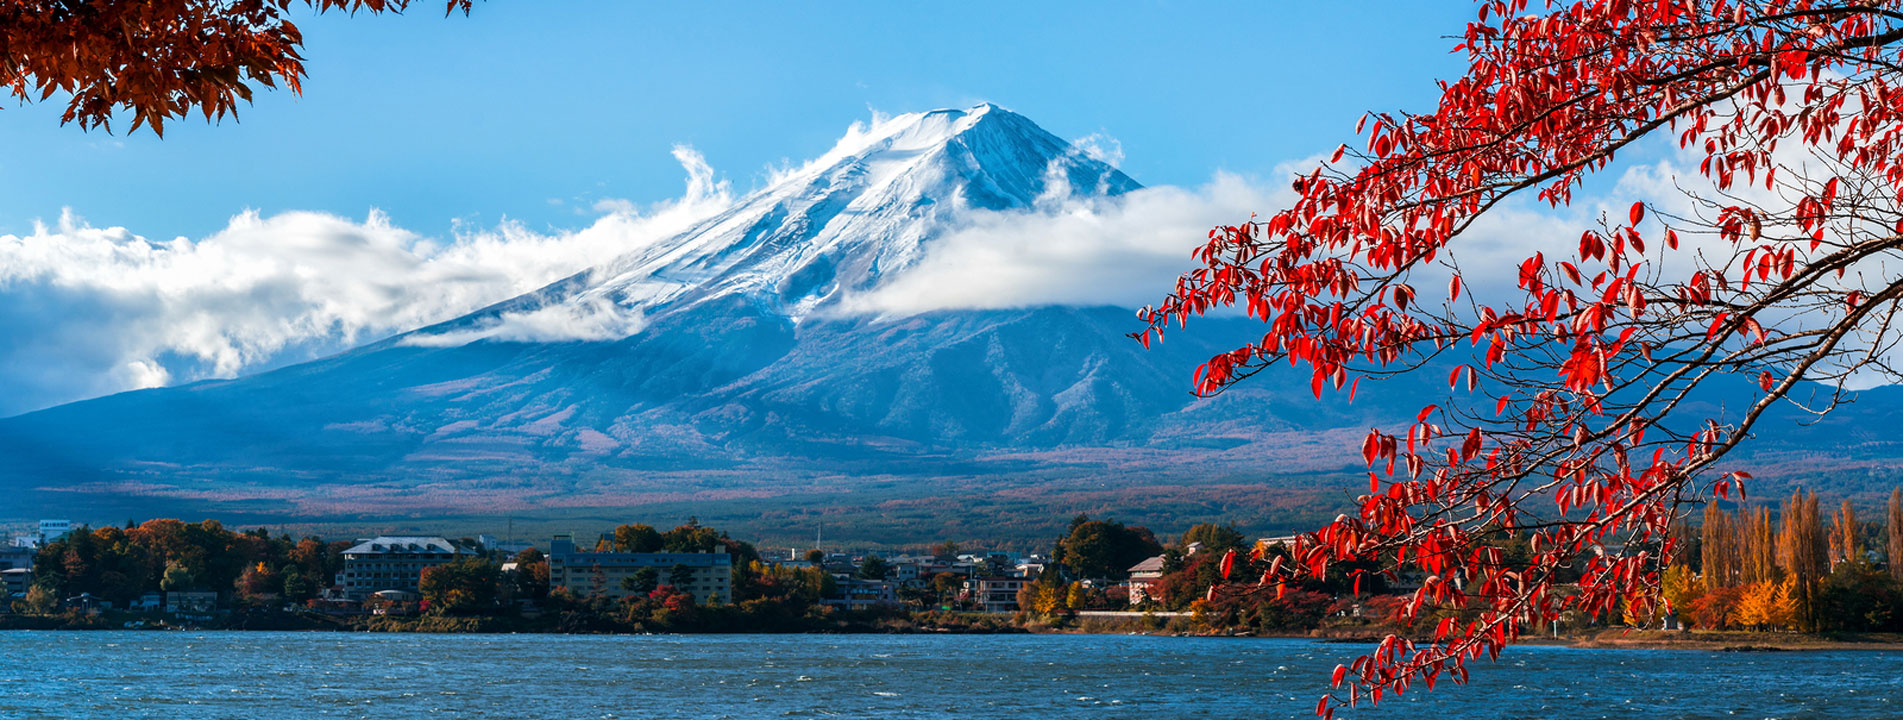 Japan Tours, picture from Mt Fuji